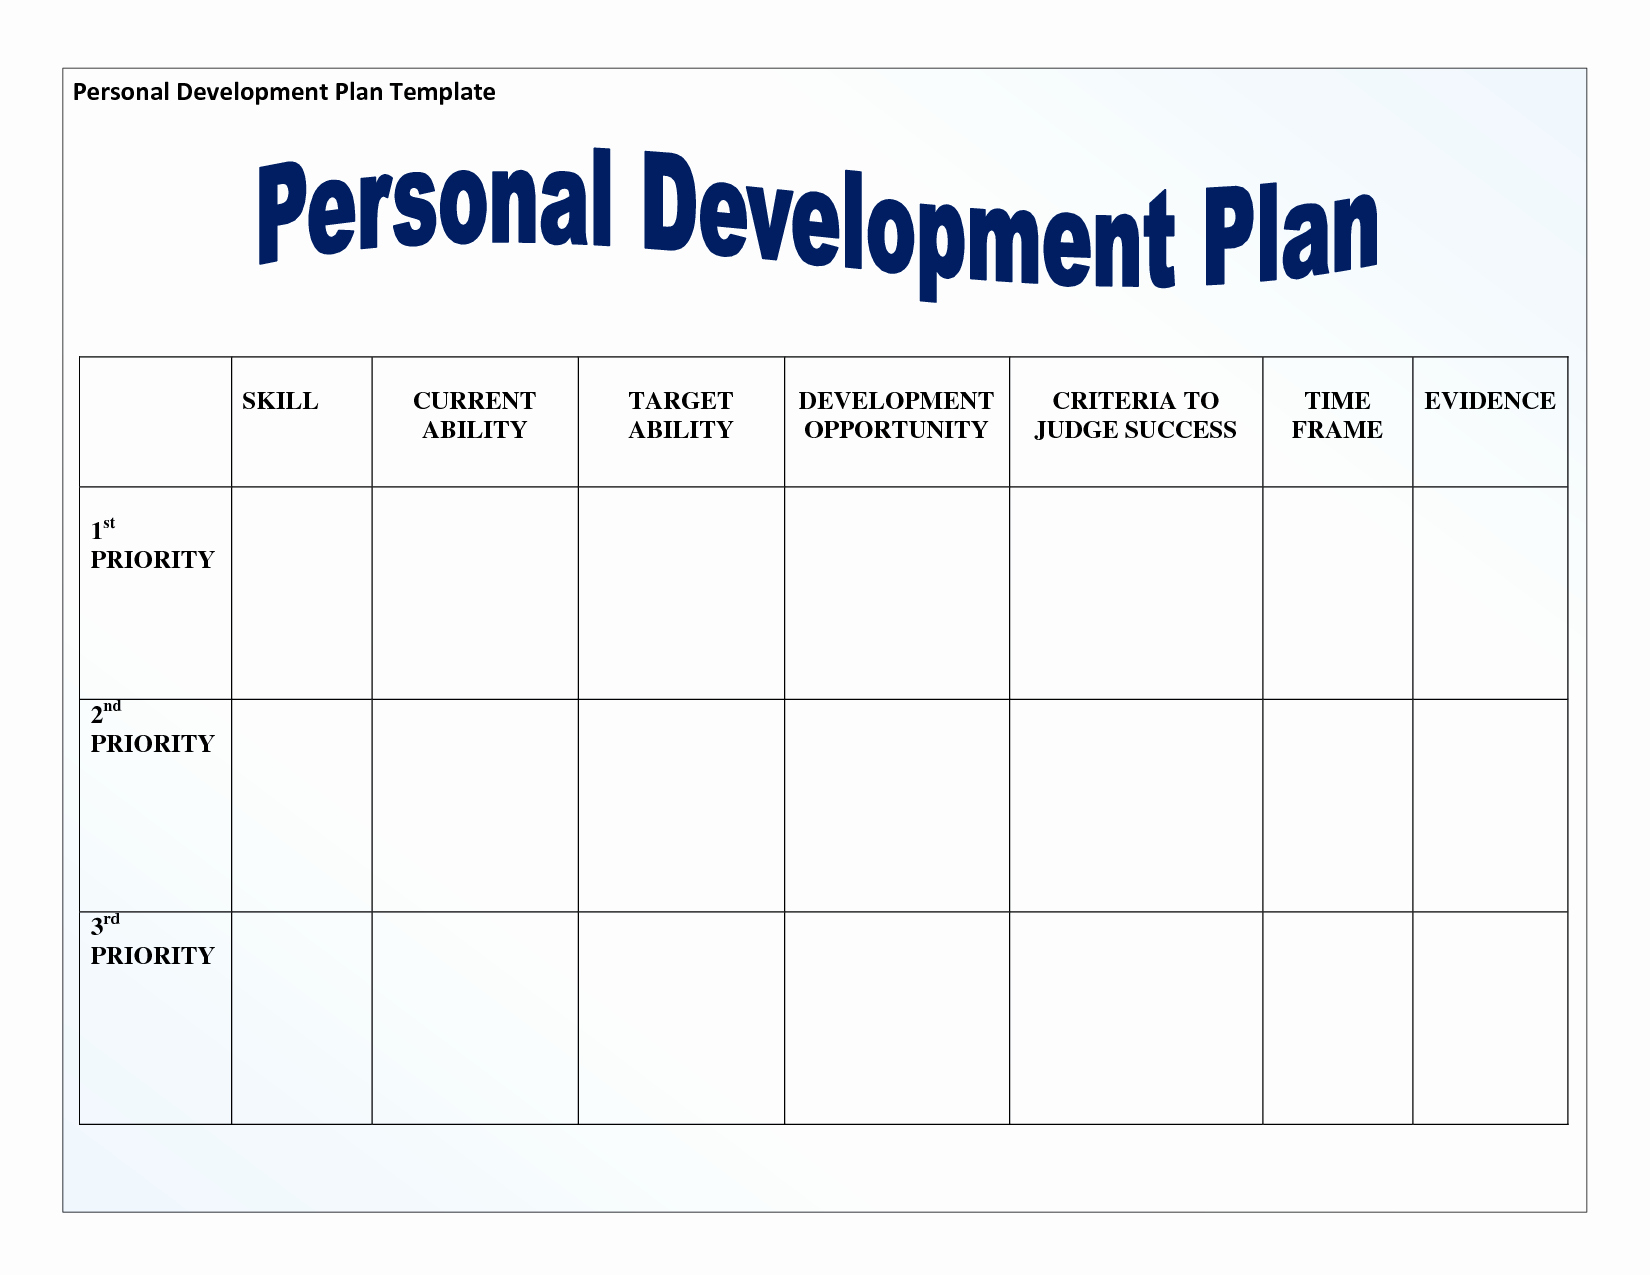 Personal Action Plan Template Best Of Personal Development Images Google Search